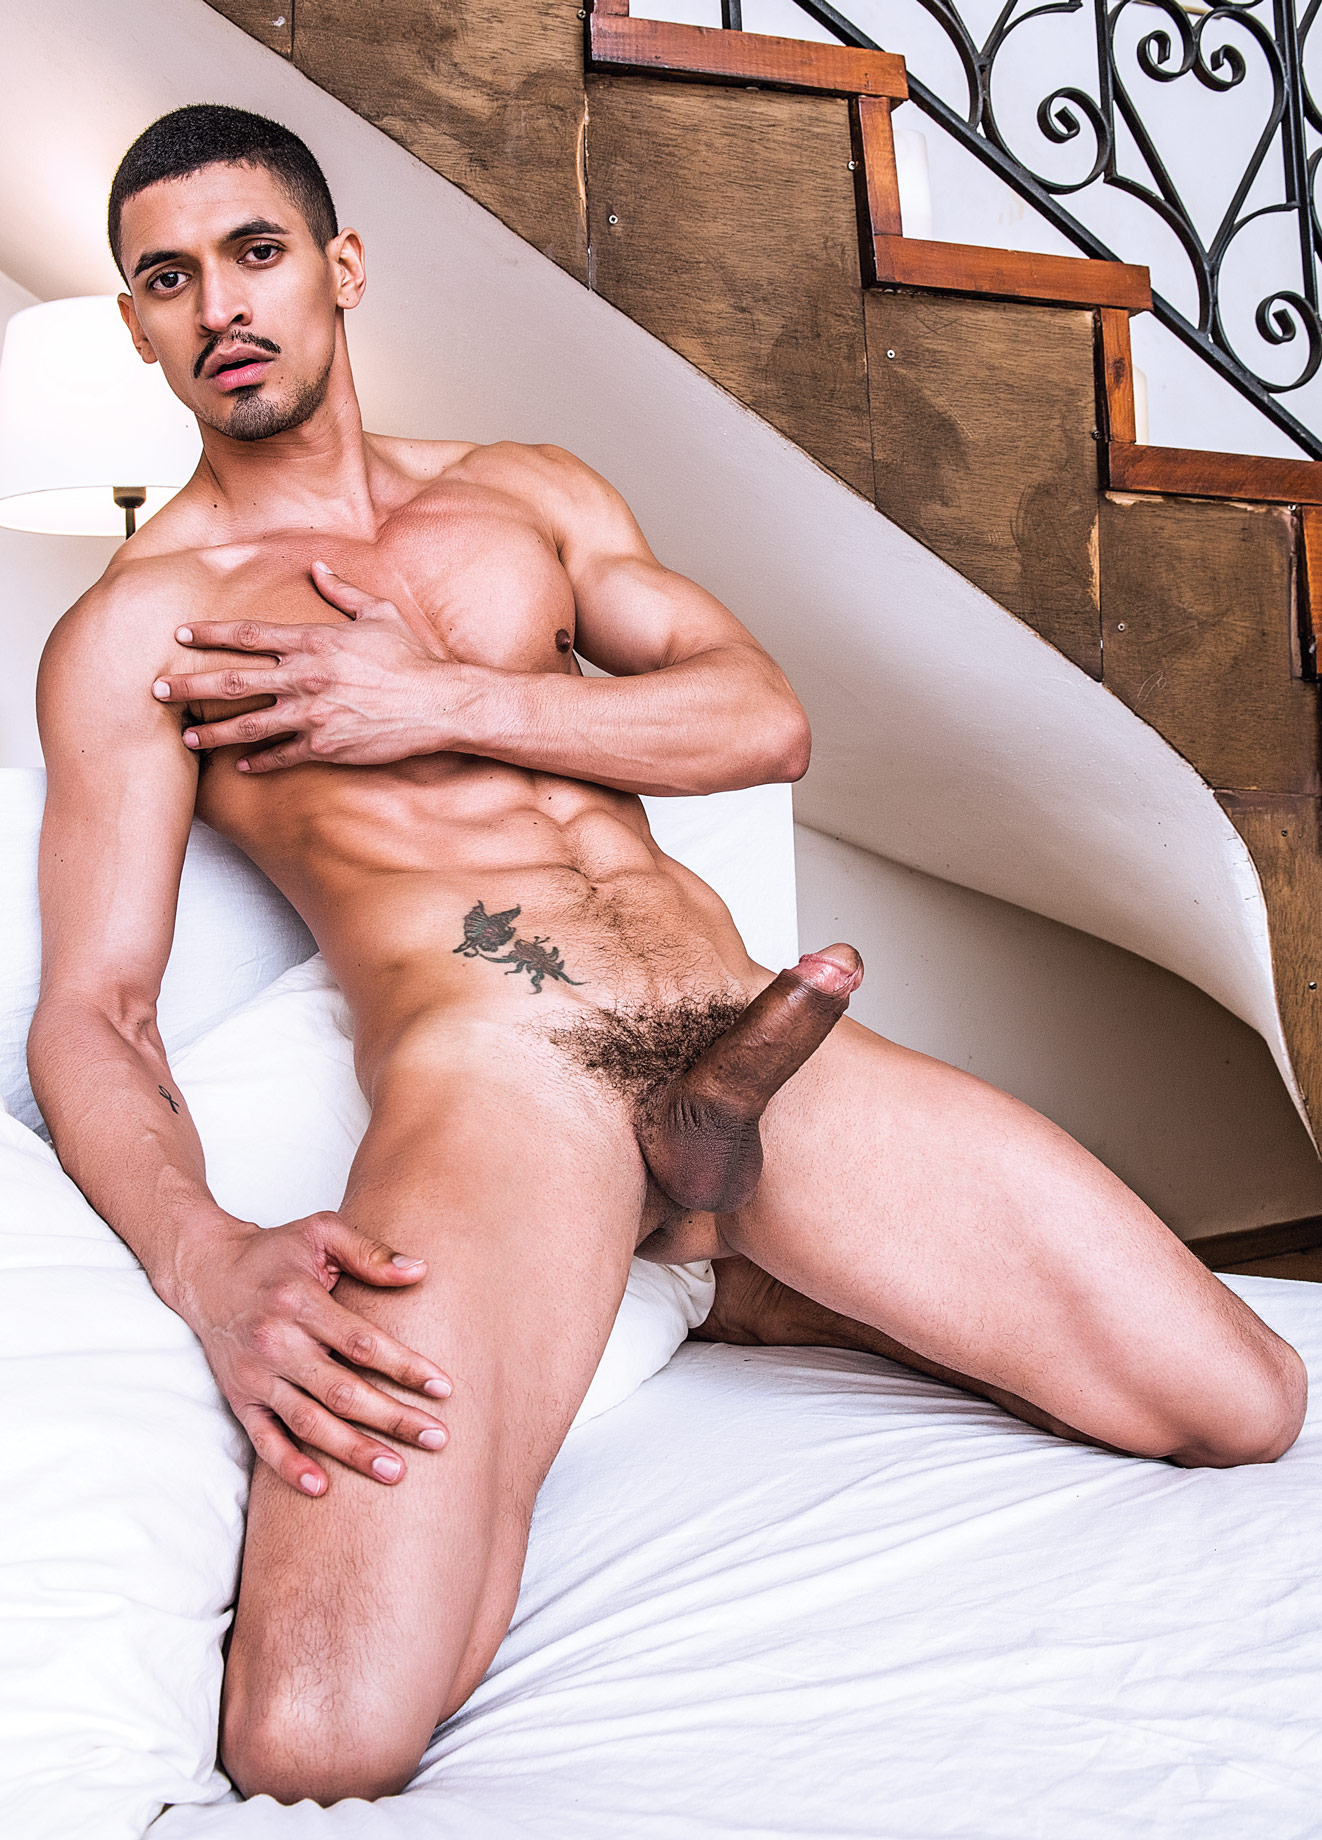 Mexican big dick gay anal sex pissing after 7